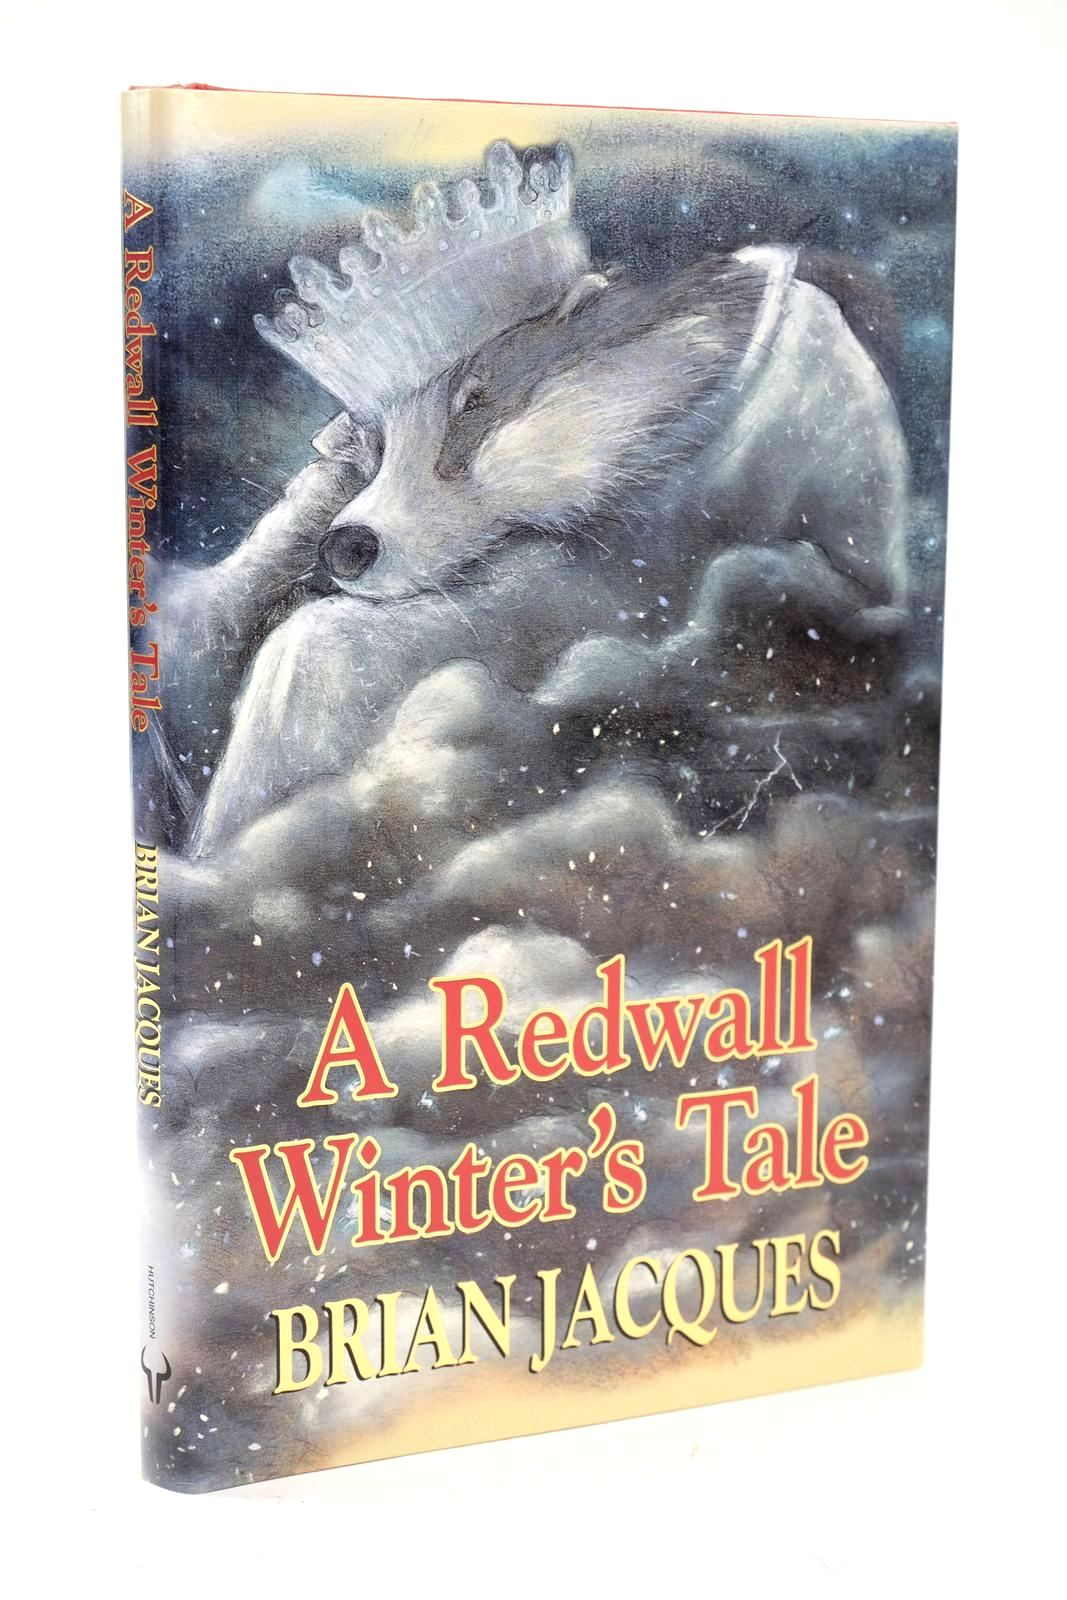 Photo of A REDWALL WINTER'S TALE written by Jacques, Brian illustrated by Denise, Christopher published by Hutchinson (STOCK CODE: 1319396)  for sale by Stella & Rose's Books